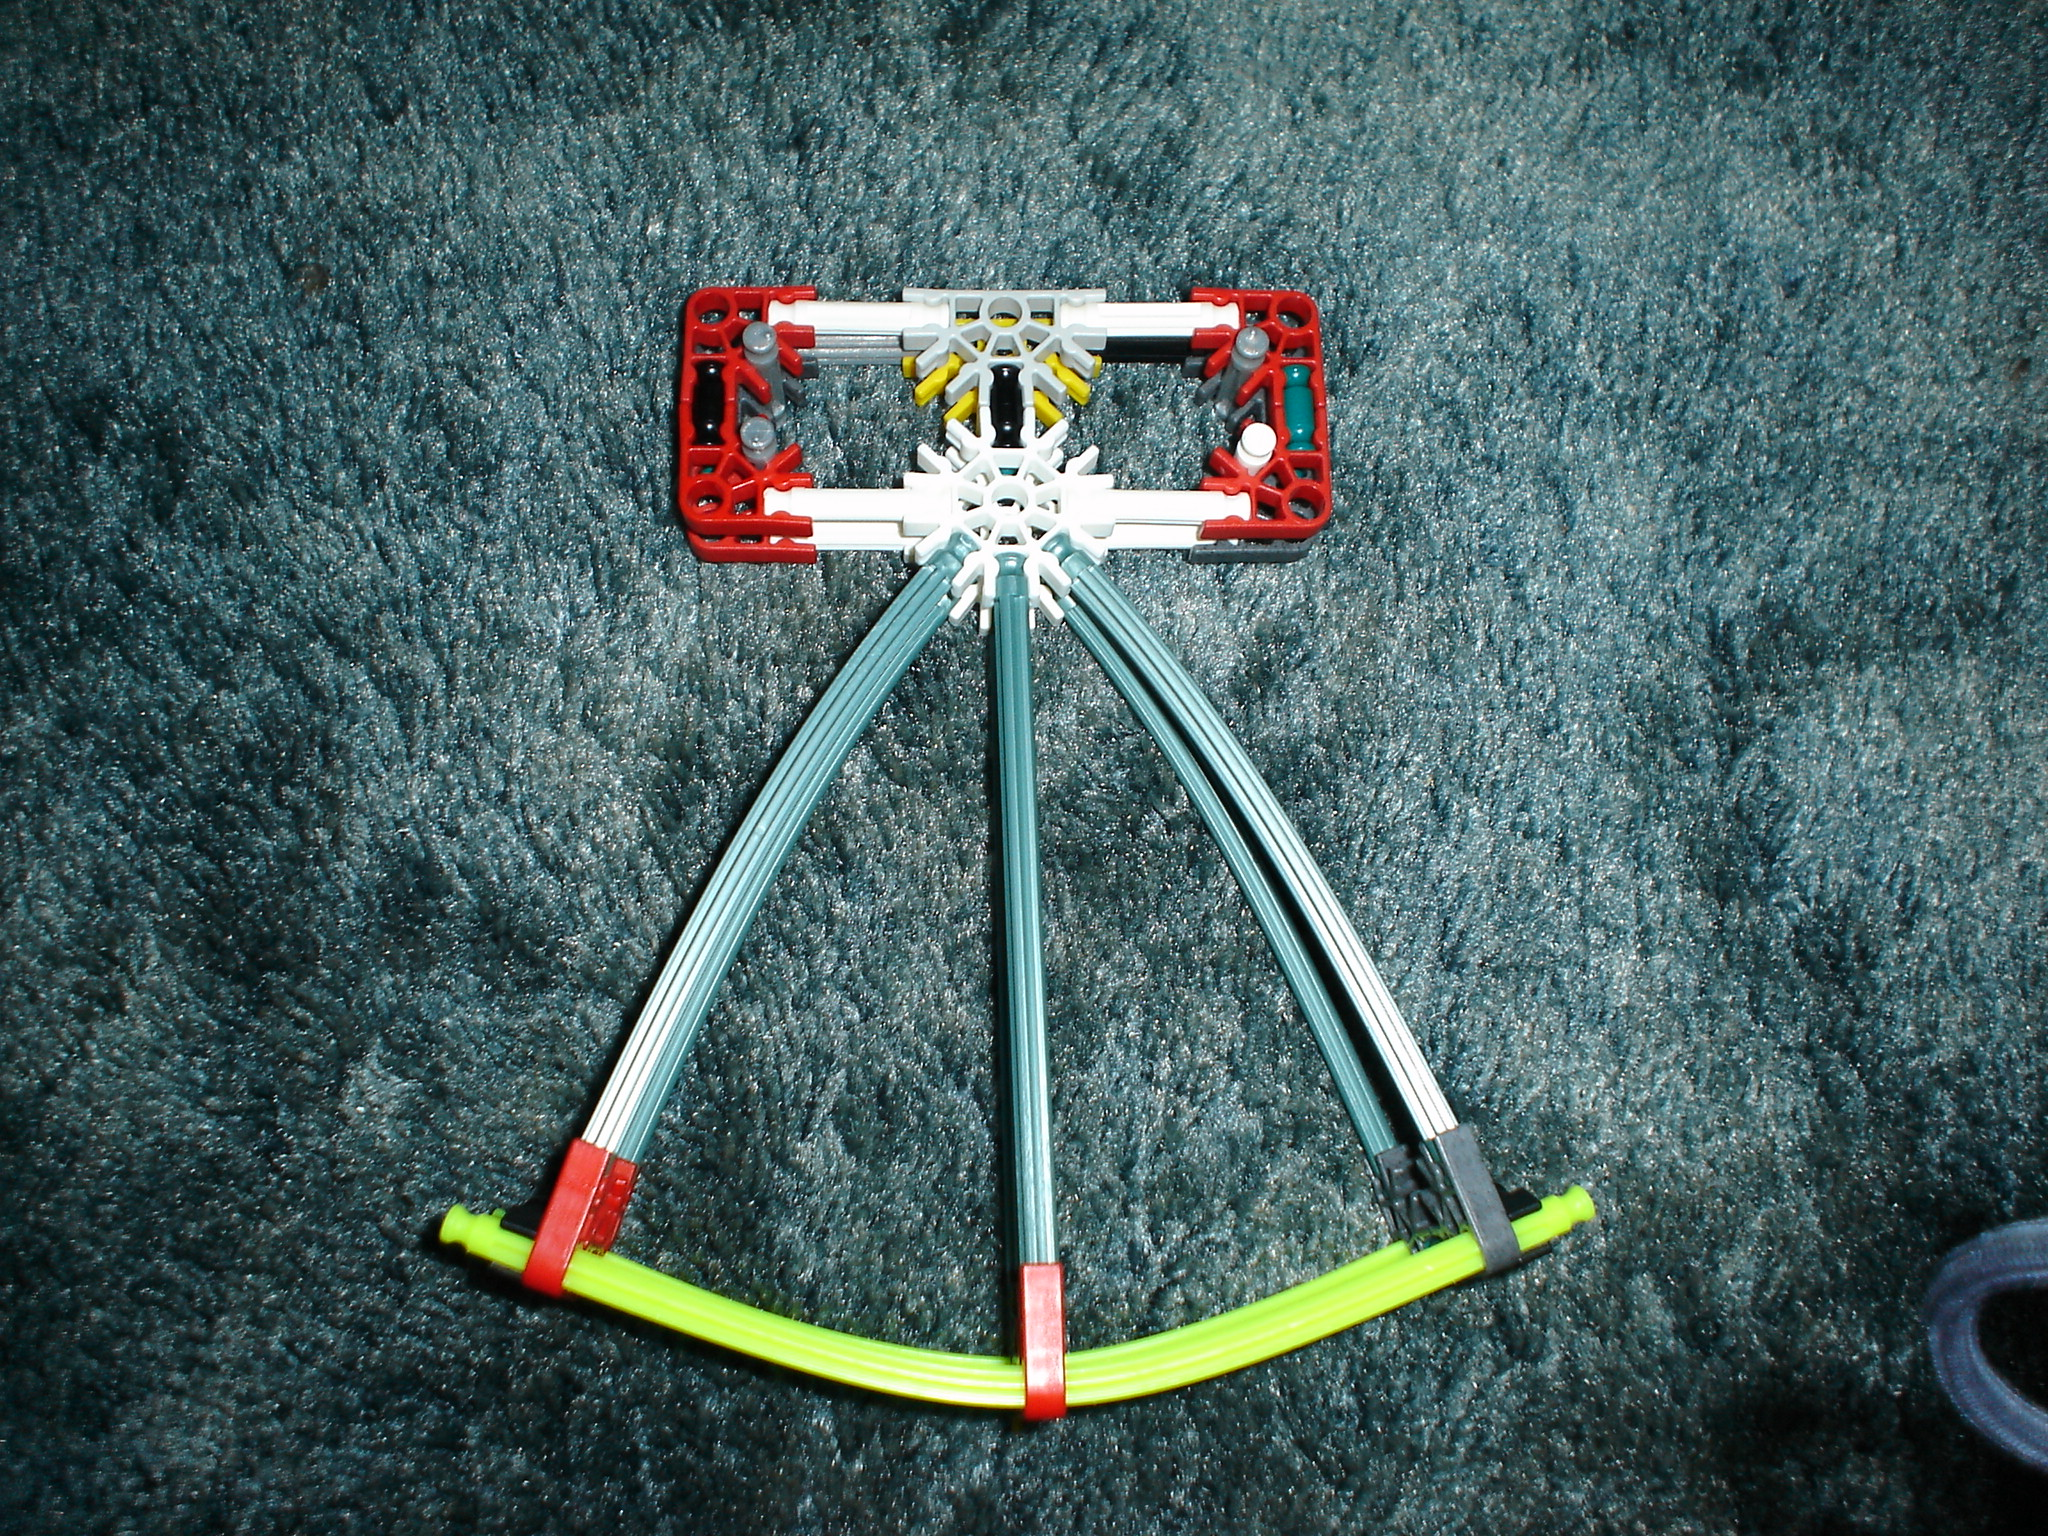 Knex Rocking Chair : 5 Steps - Instructables